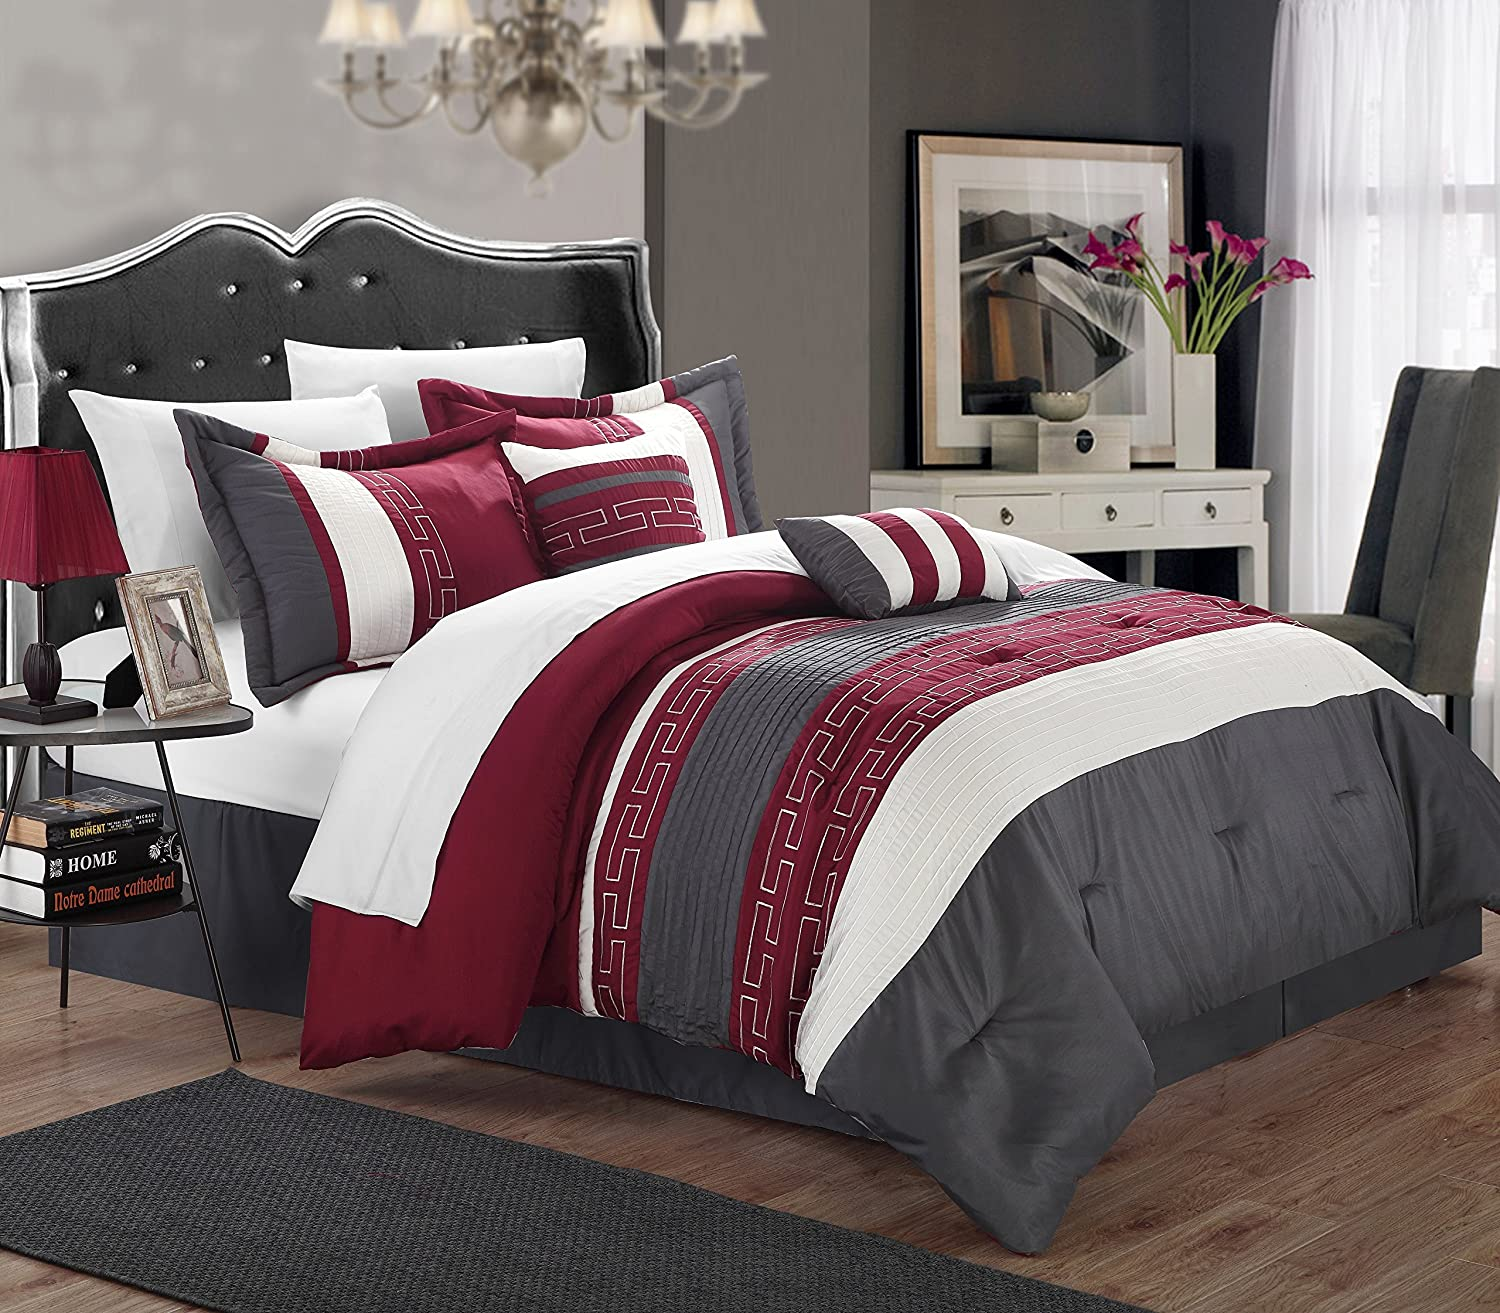 Burgundy Amp Black Bedding Sets Sale Ease Bedding With Style